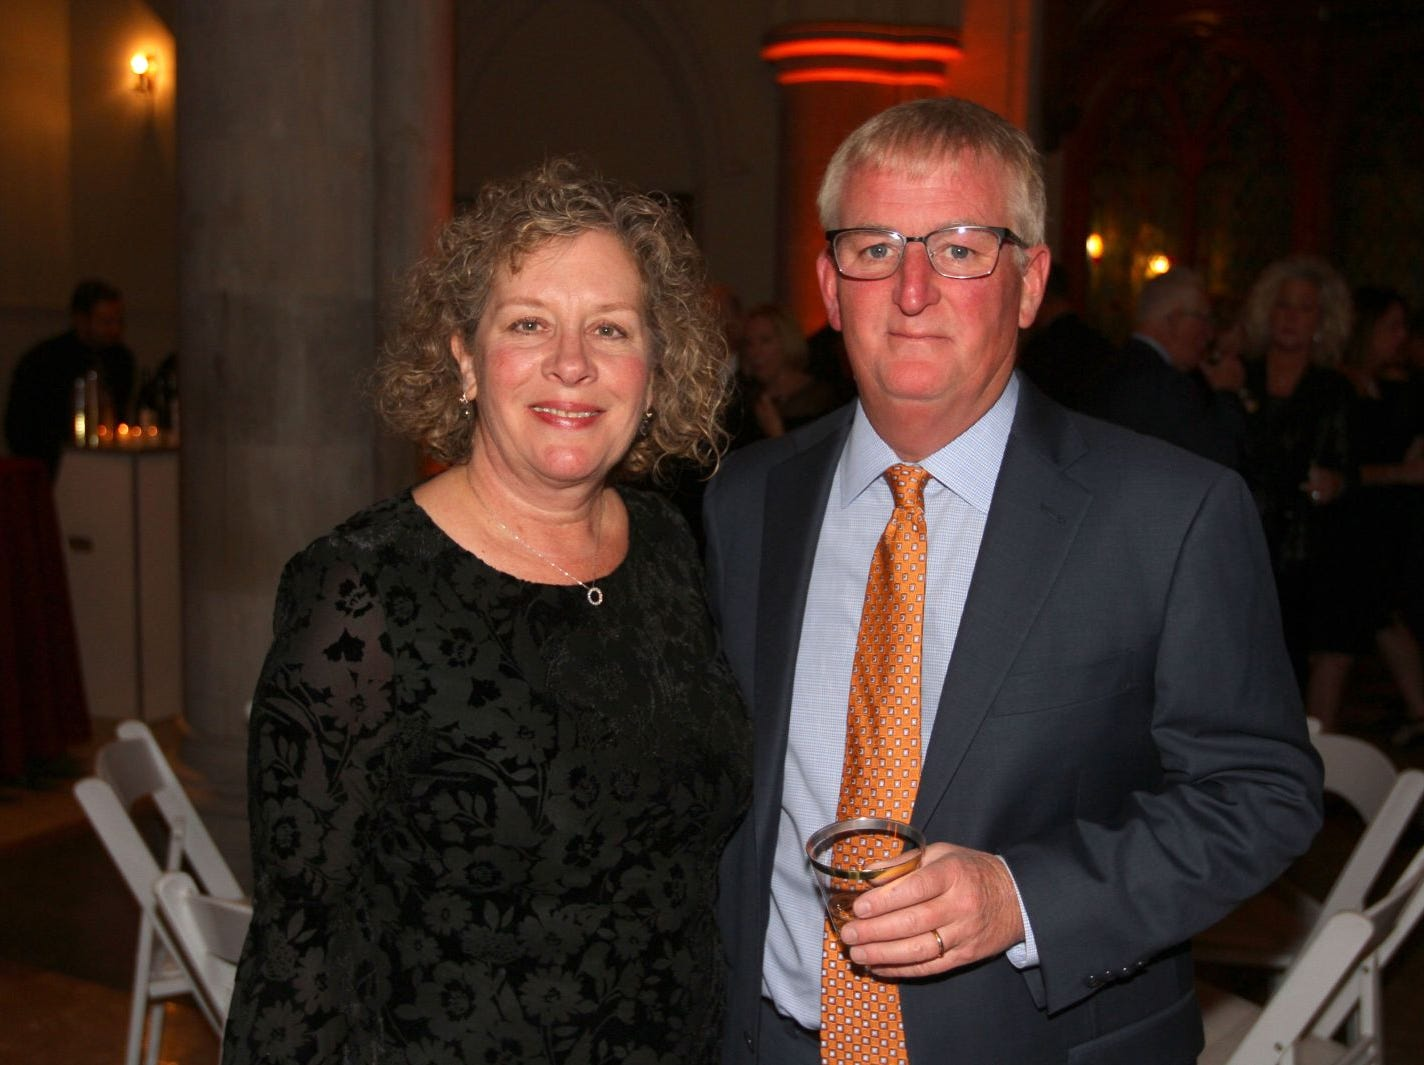 Beth and Doug Phelps. Wyckoff Family YMCA hosted its 75th anniversary gala to celebrate its benefactors, held at the Rio Vista seminary in Mahwah. 11/16/2018